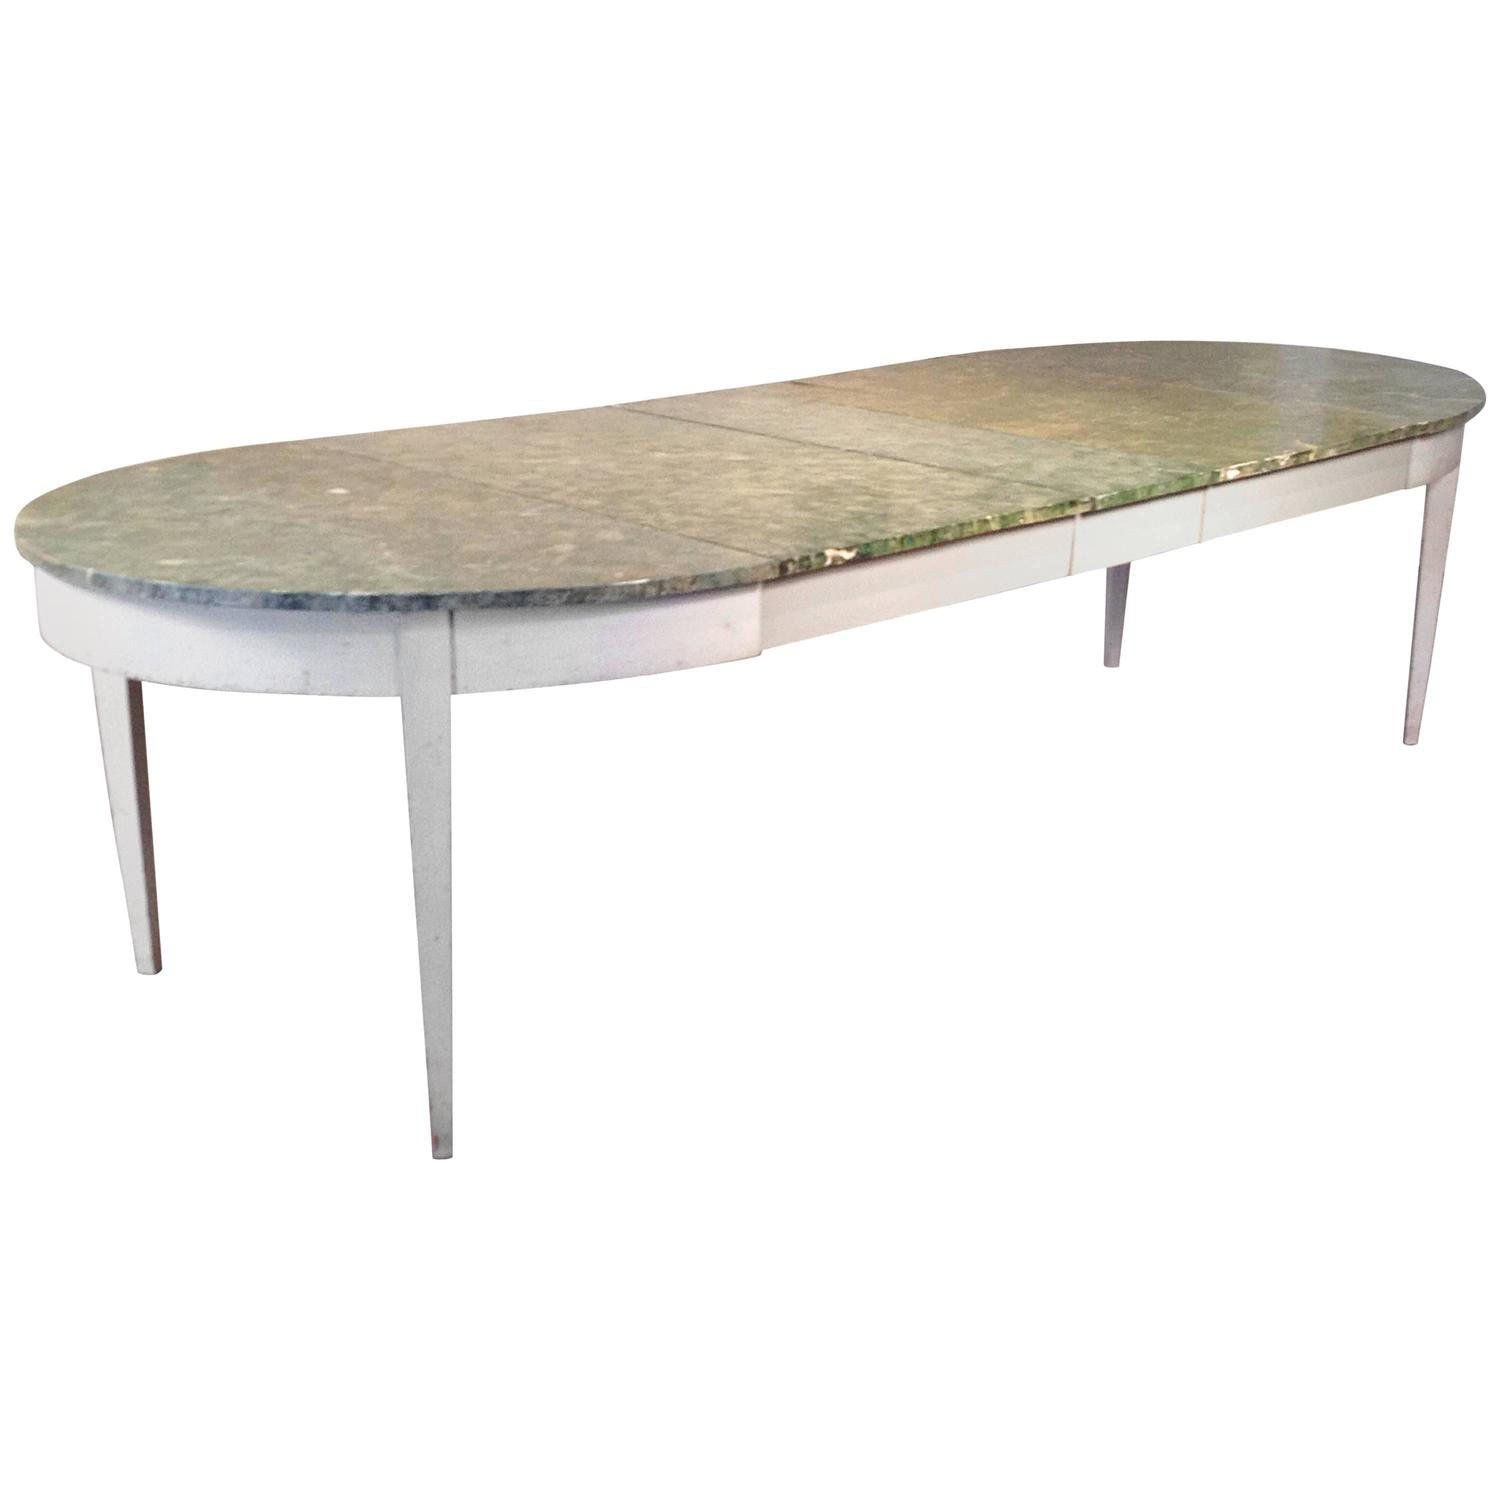 Slate Topped Coffee Tables Images Tea Table Designs The